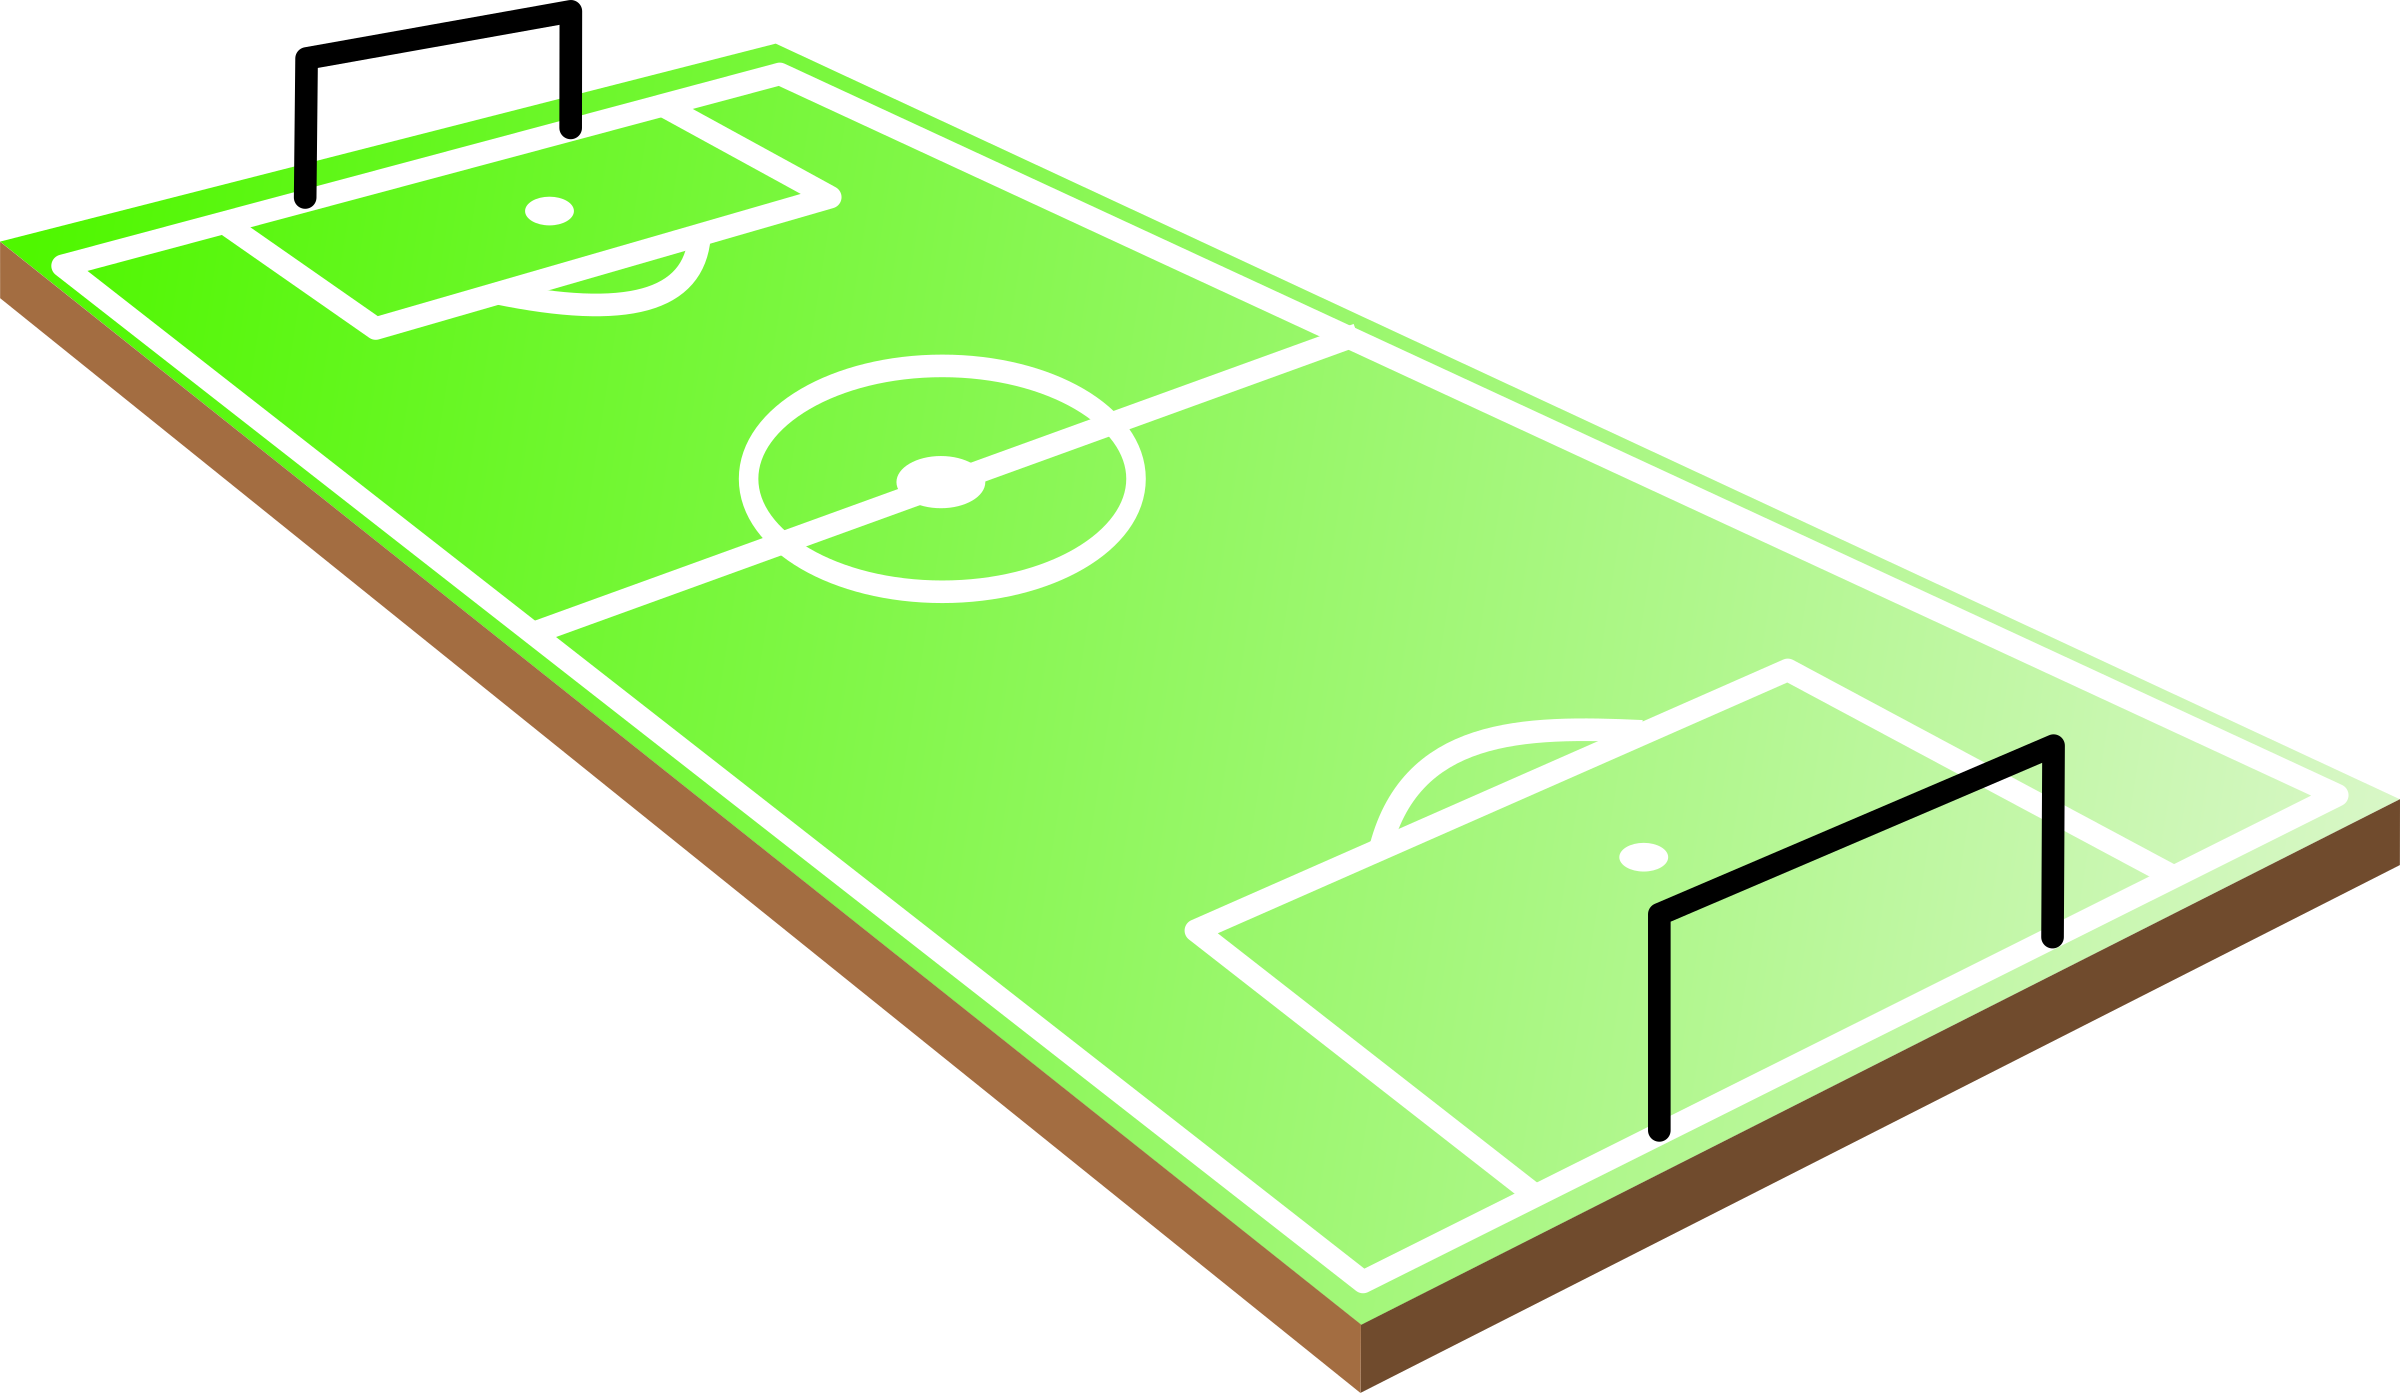 Clipart Terrain De Football.